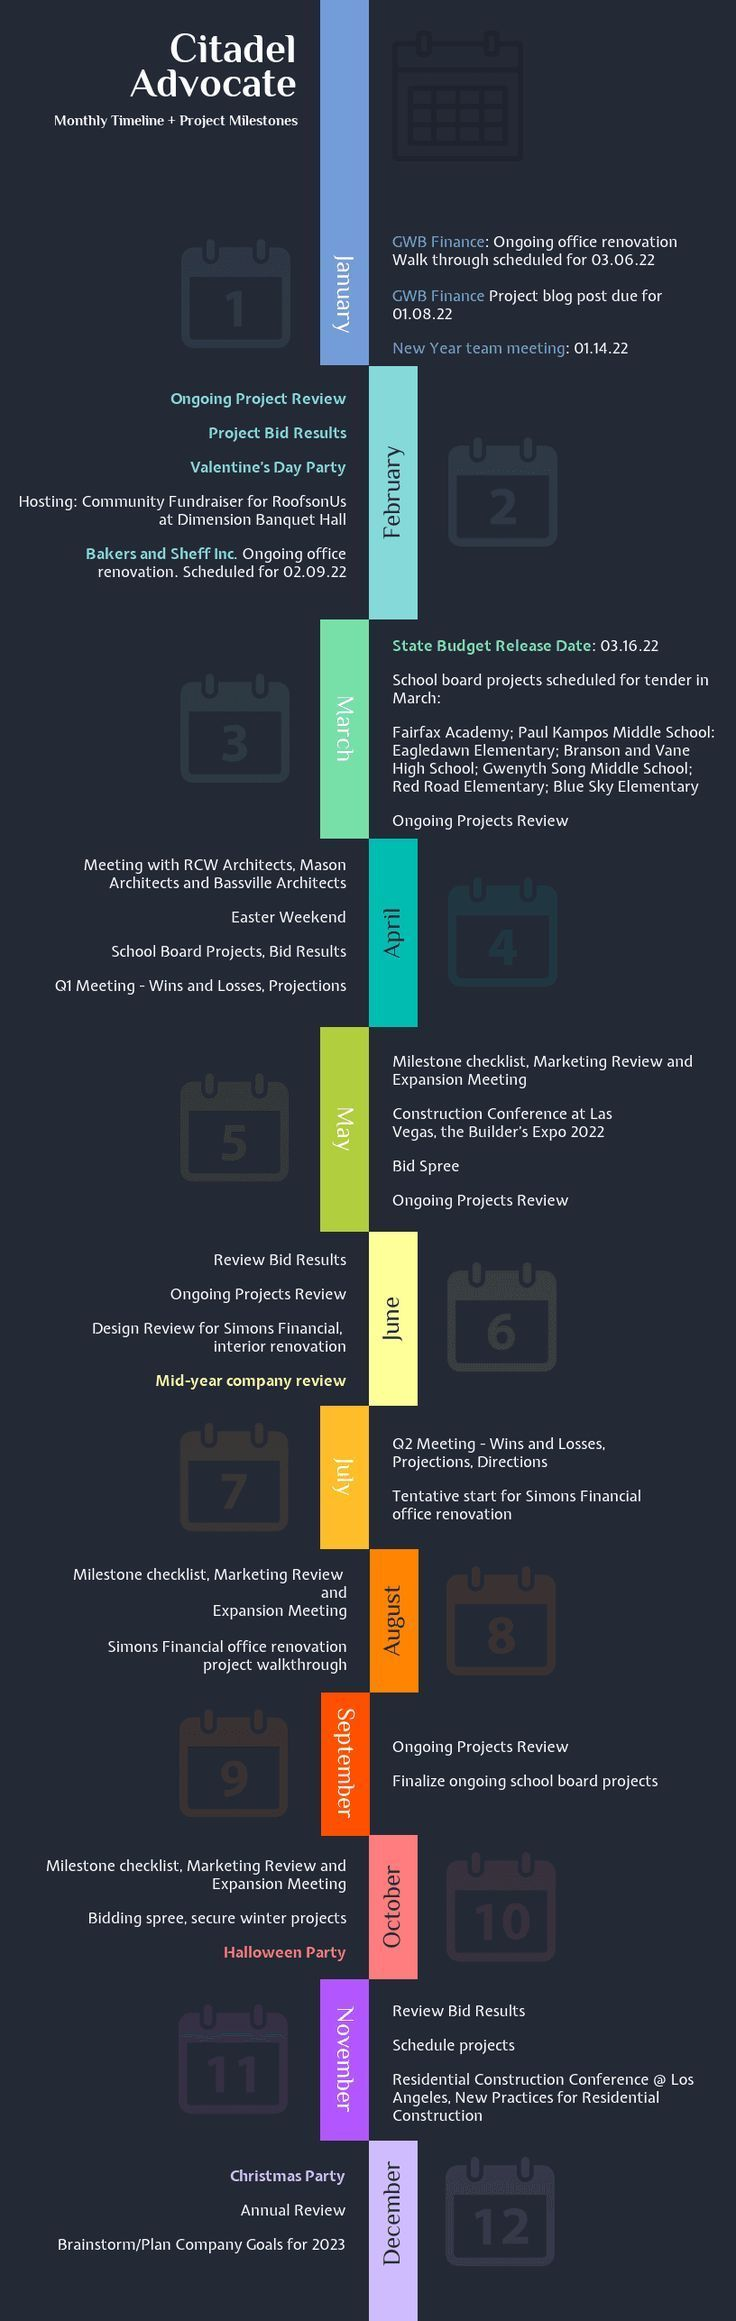 Business infographic  12 New Timeline Infographic Ideas Templates  Examples  Daily Desig Business infographic  12 New Timeline Infographic Ideas Templates  Examples  Dail...